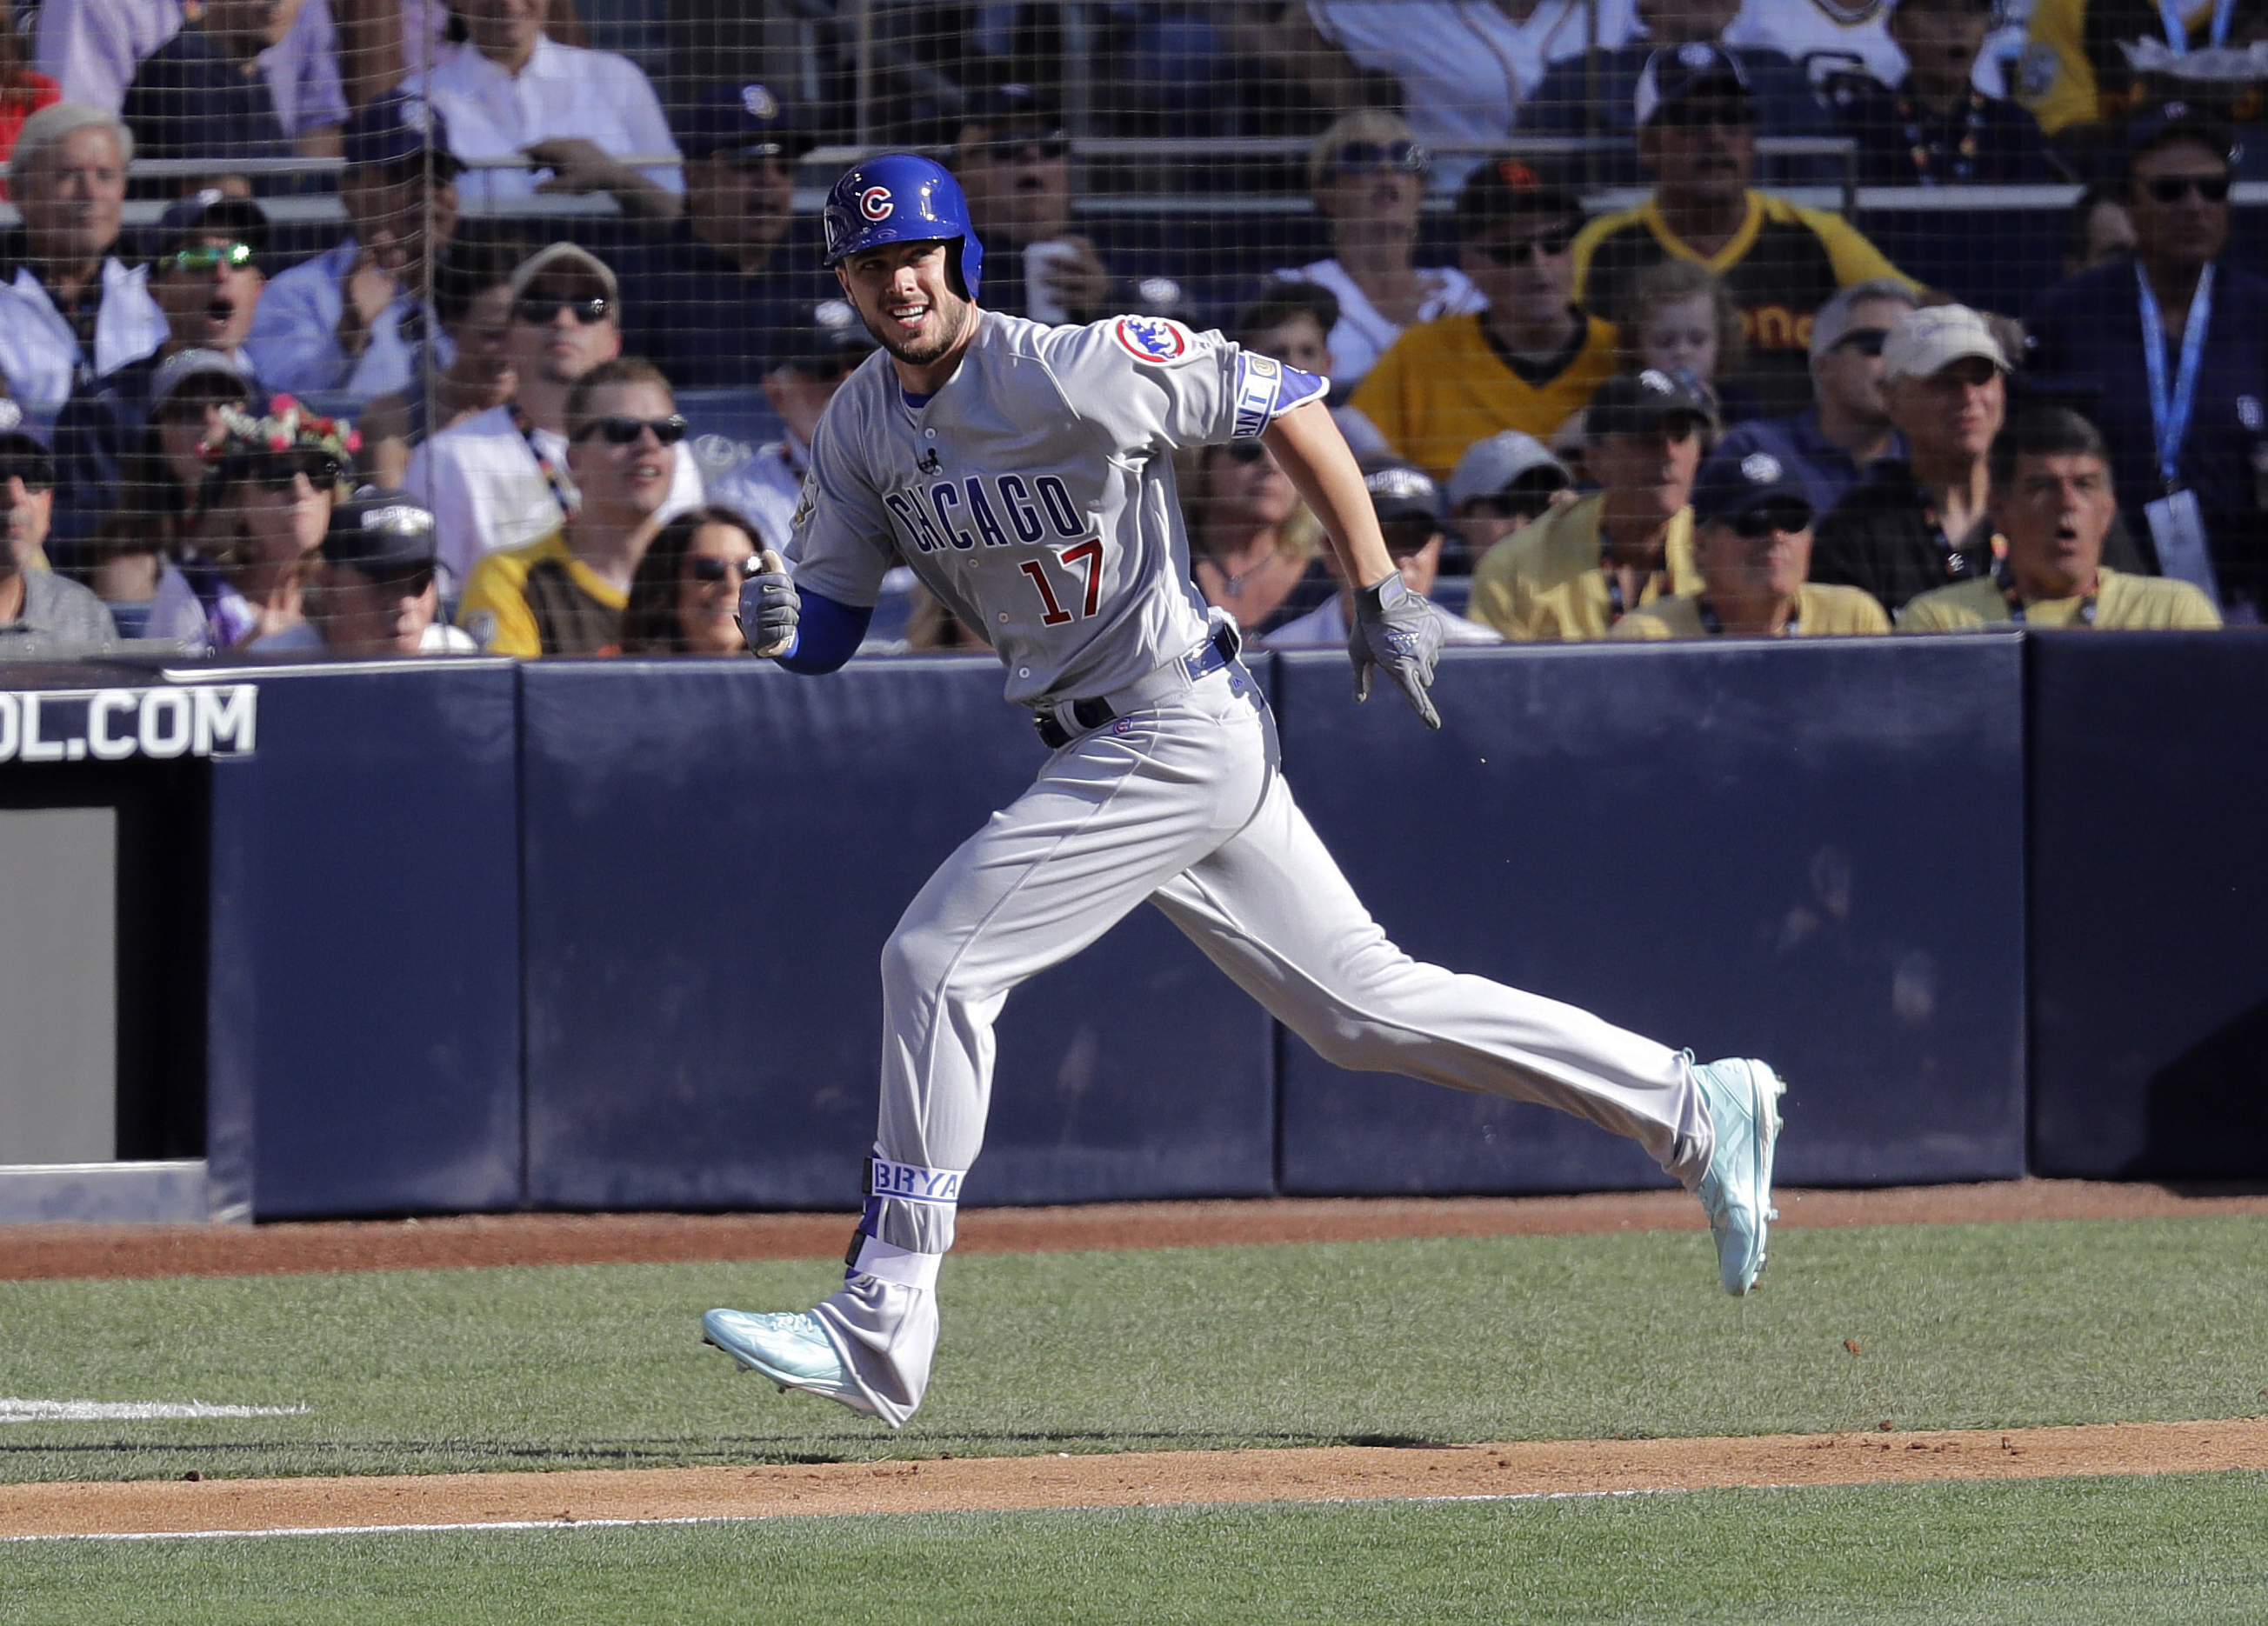 National League's Kris Bryant, of the Chicago Cubs, rounds the bases after hitting a solo home run during the first inning of the MLB baseball All-Star Game against the American League, Tuesday, July 12, 2016, in San Diego. (AP Photo/Jae C. Hong)